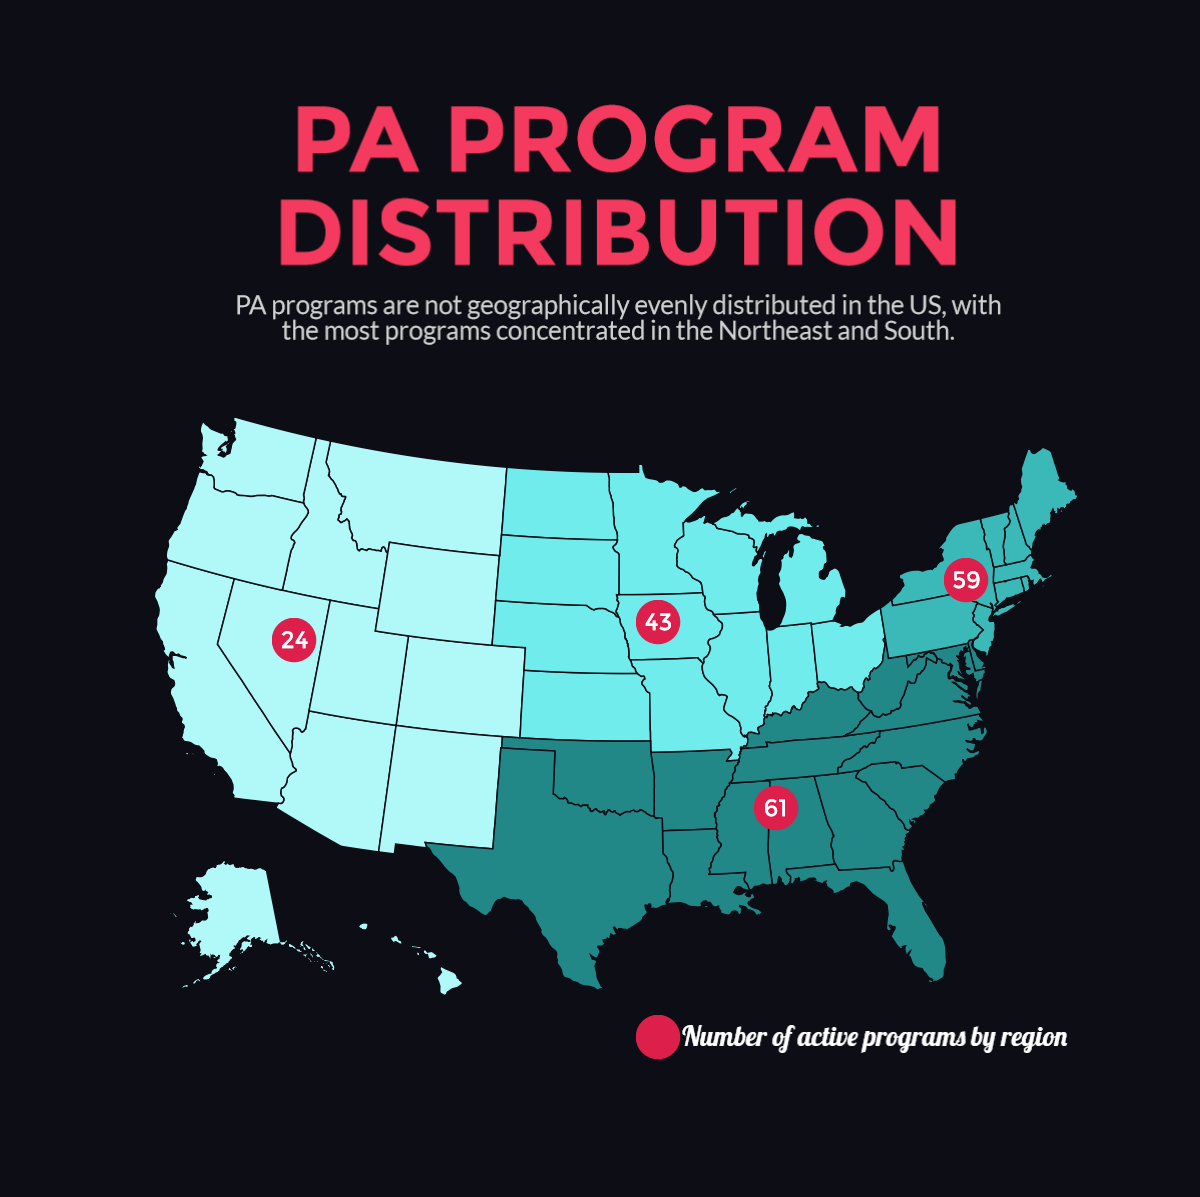 Distribution of programs with survey respondents, which is similar to the geographic distribution of PA programs.